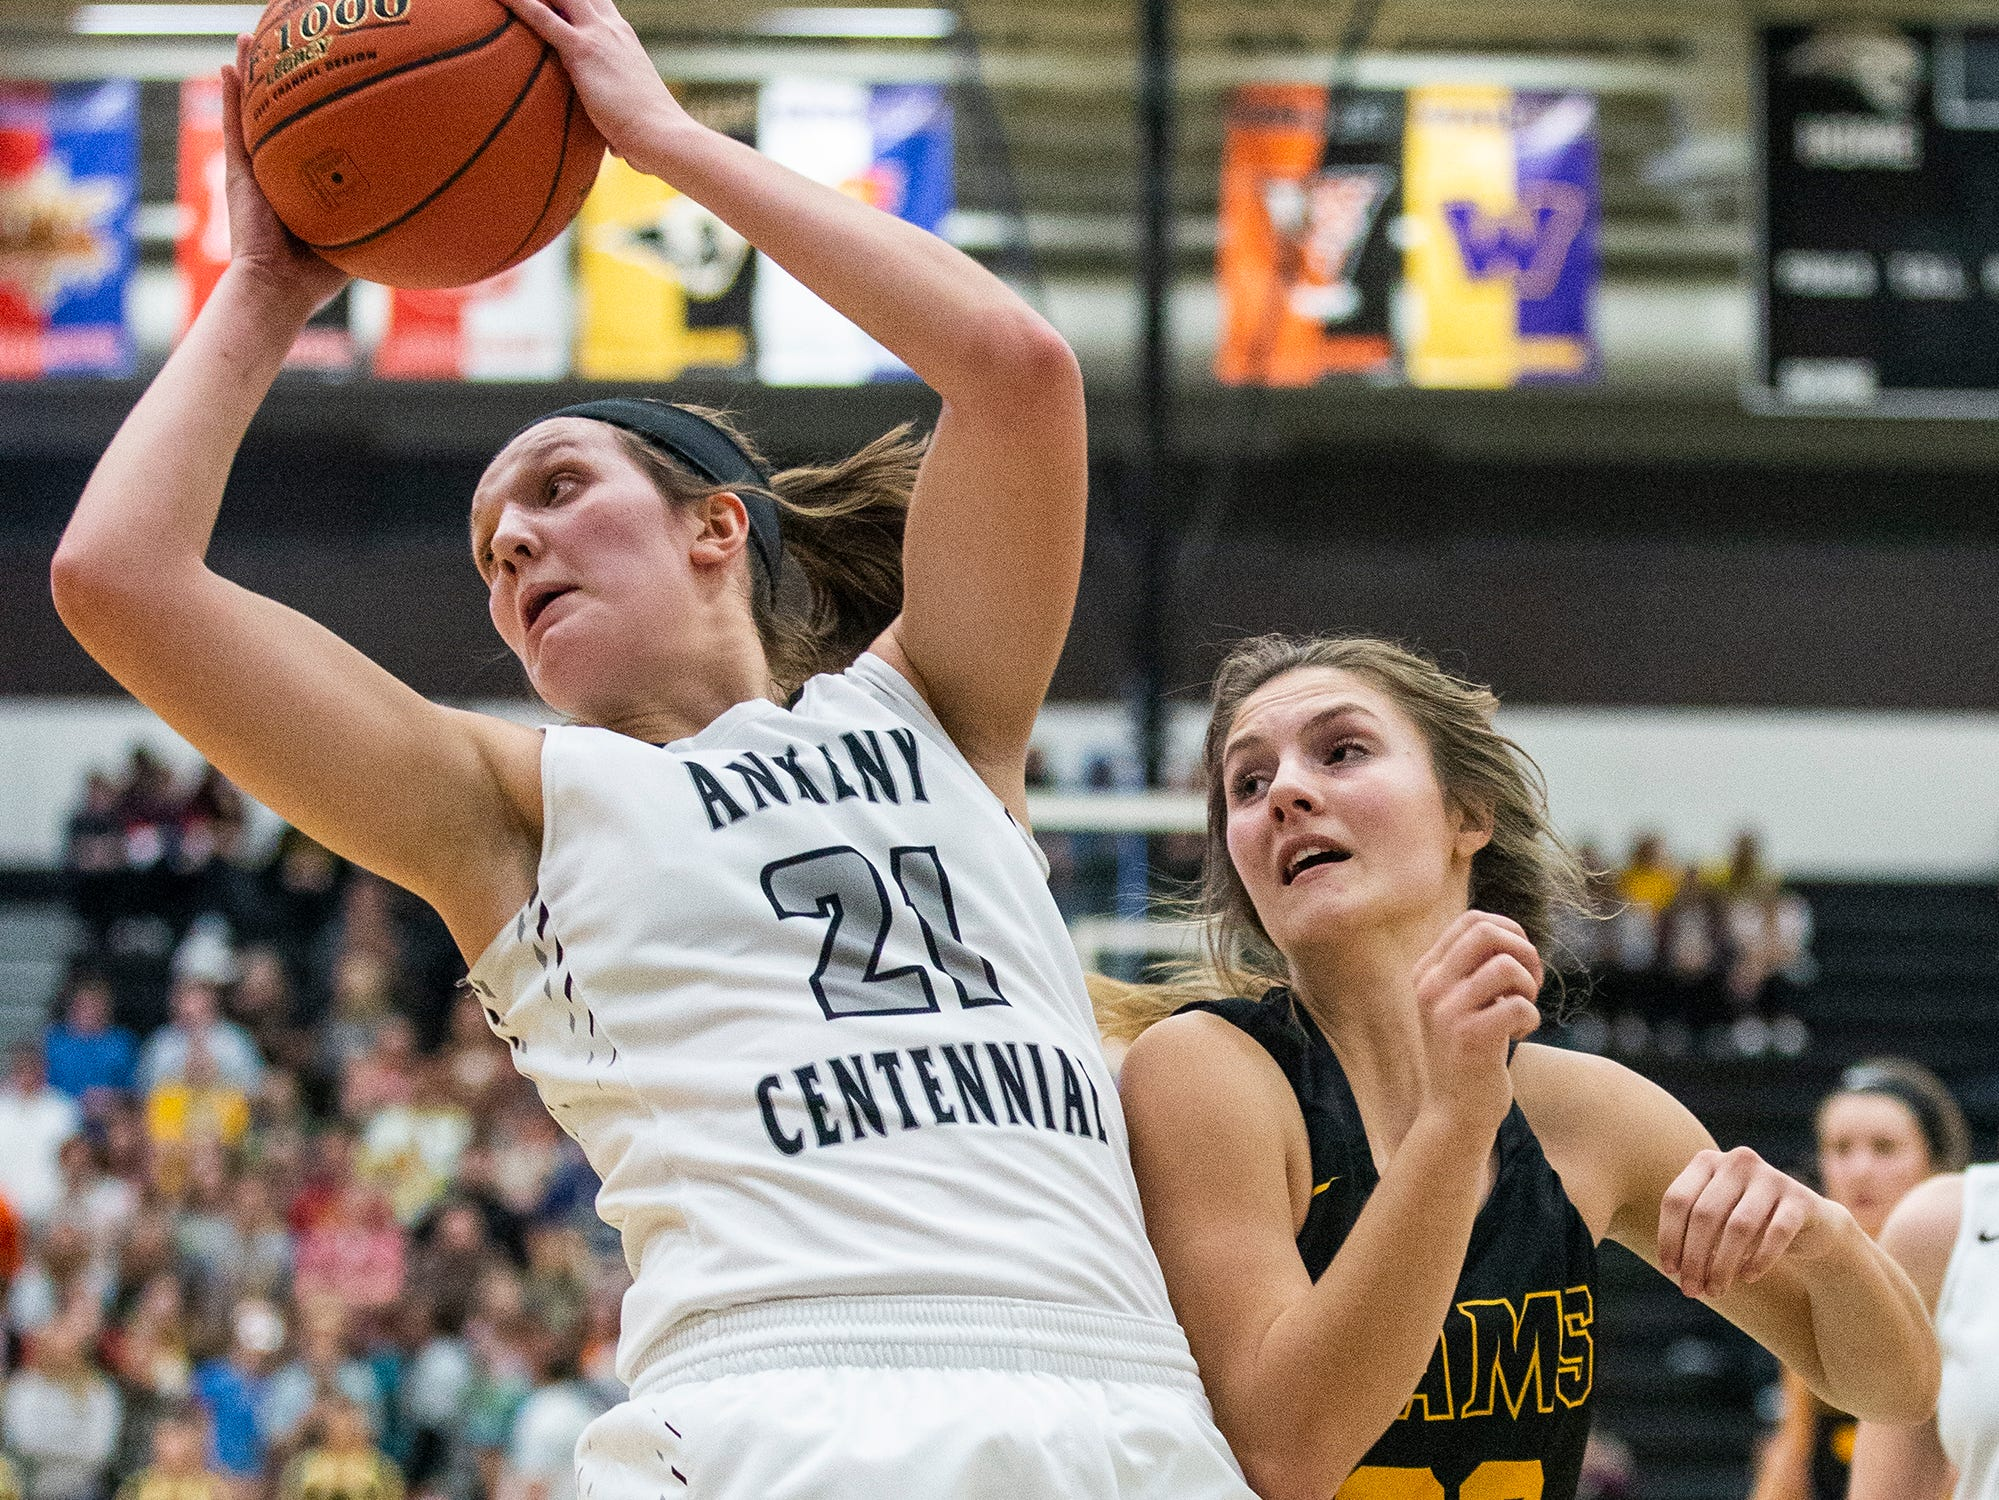 Centennial's Rachel Schon and SEP's Sami Albertson reach for a rebound during the Southeast Polk vs. Ankeny Centennial girls' basketball game on Tuesday, Nov. 27, 2018, at Ankeny Centennial High School.